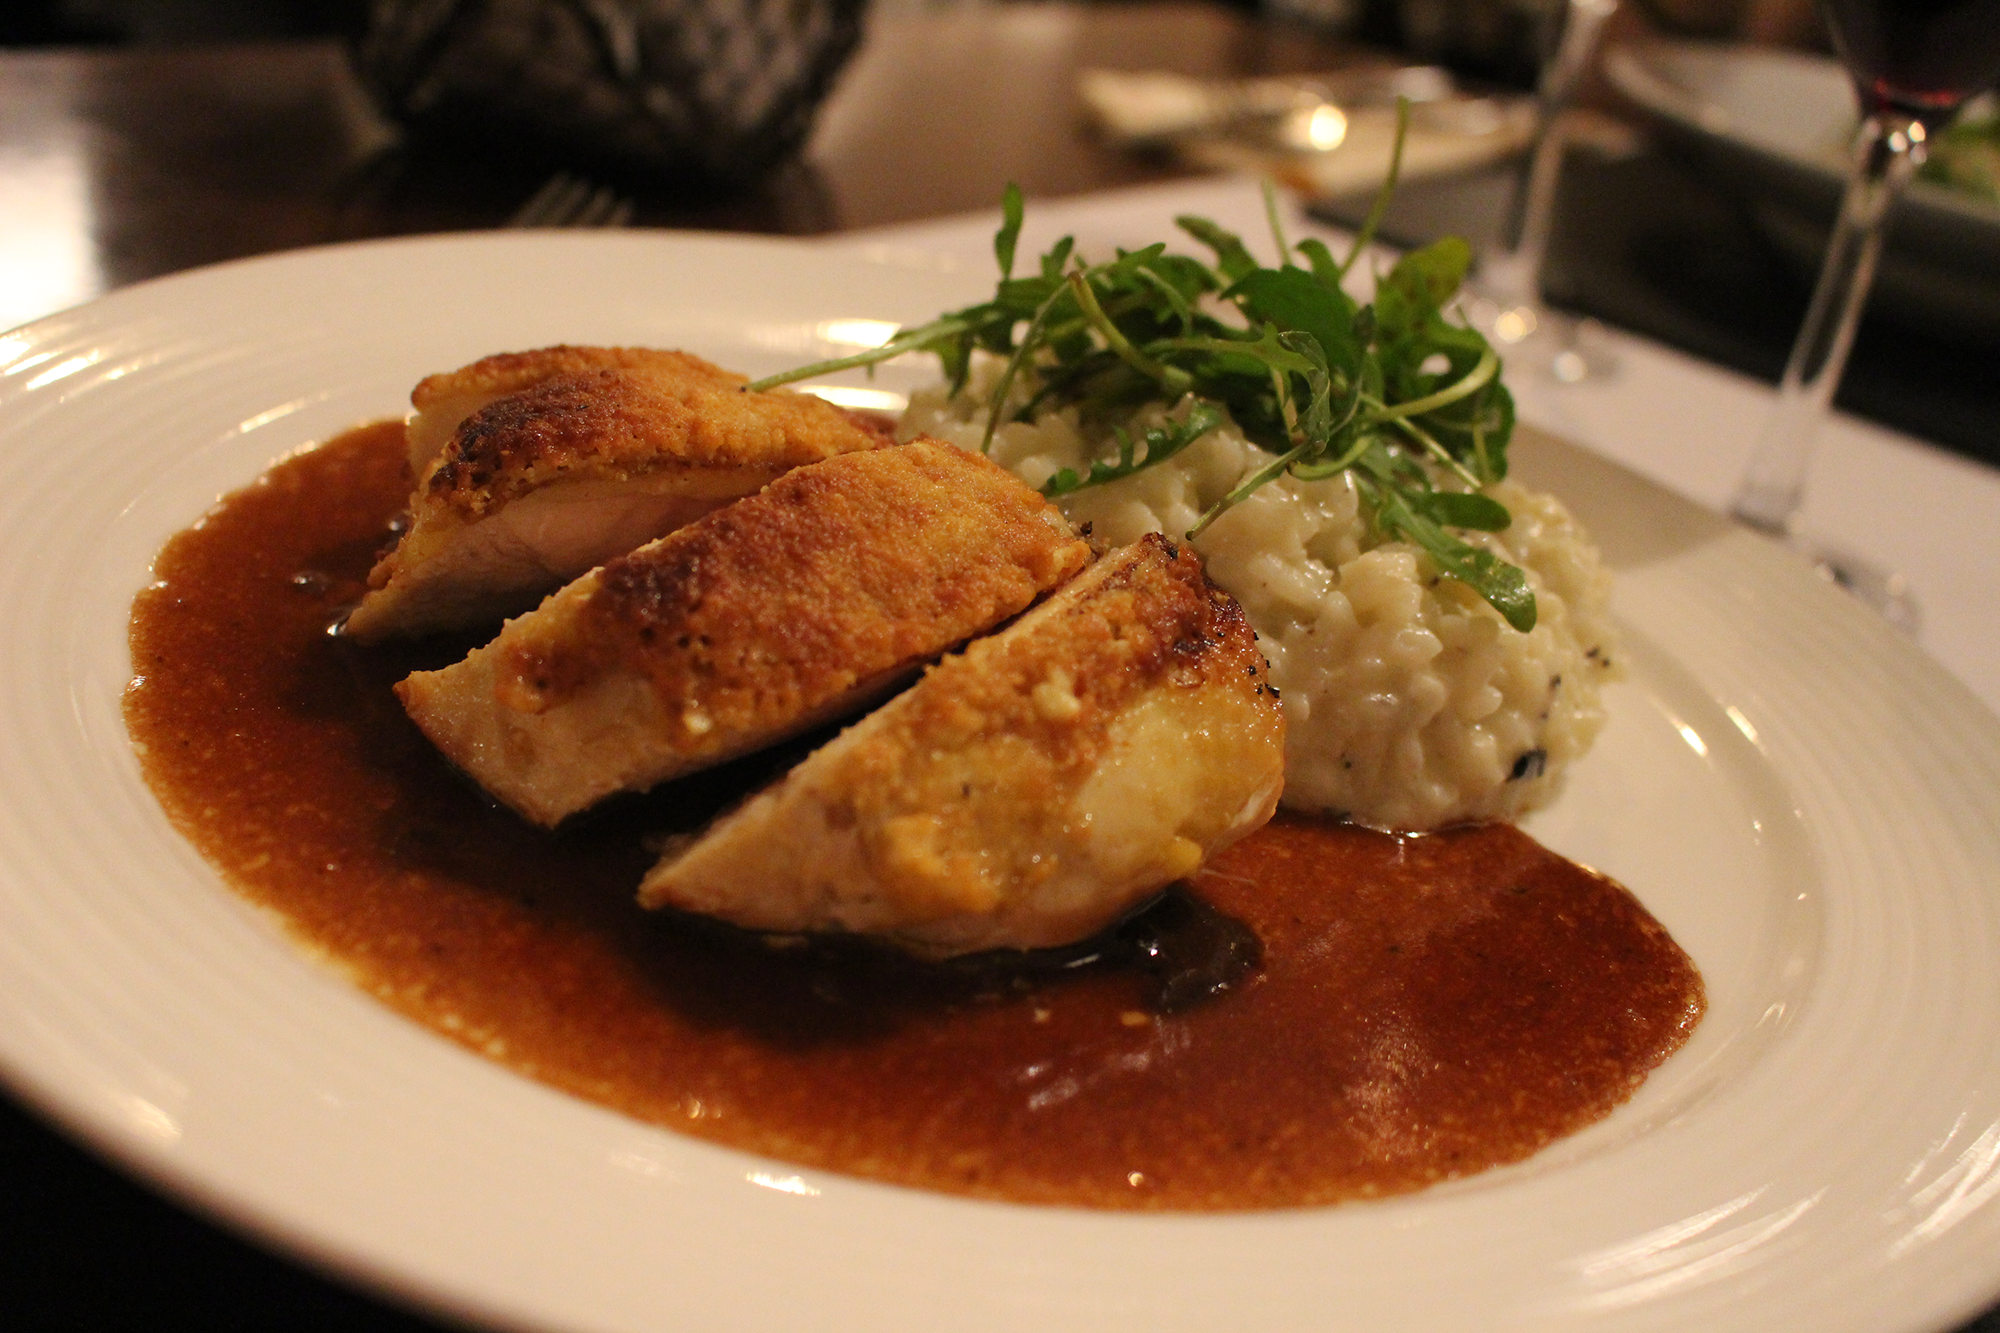 Filet de poulet jaune et risotto